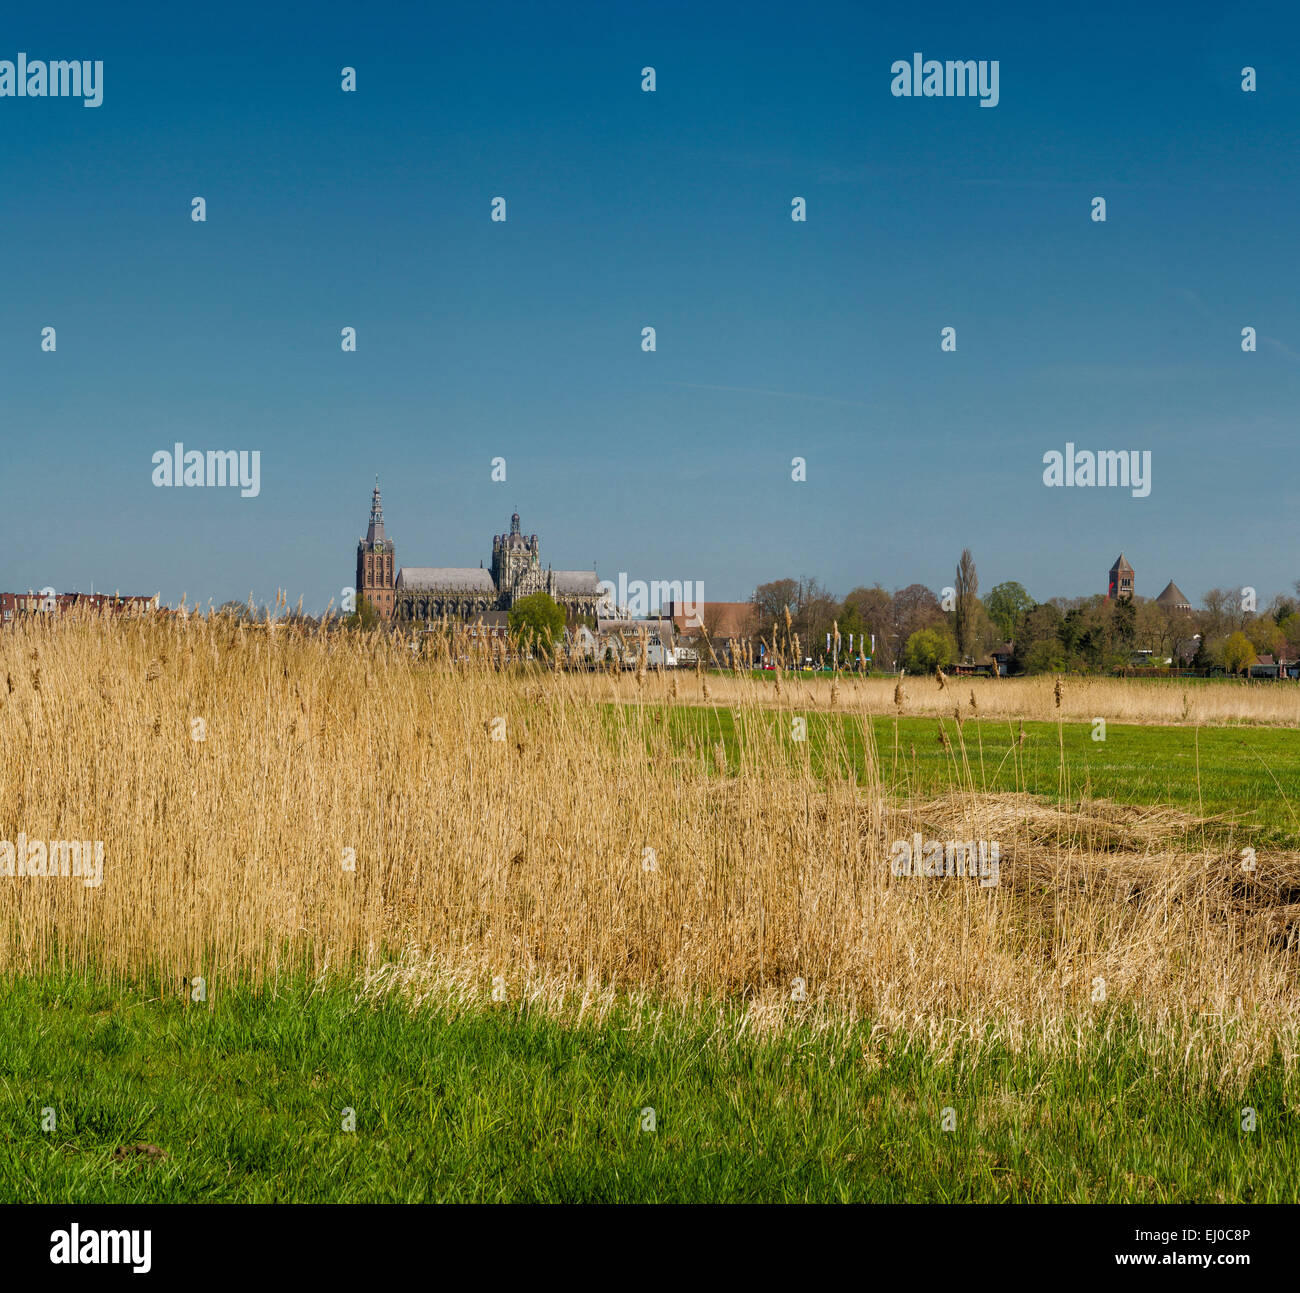 S-Hertogenbosch, Den Bosch, Pays-Bas, Hollande, Europe, paysage, champ, pré, printemps, Cathédrale, l'Église, Photo Stock